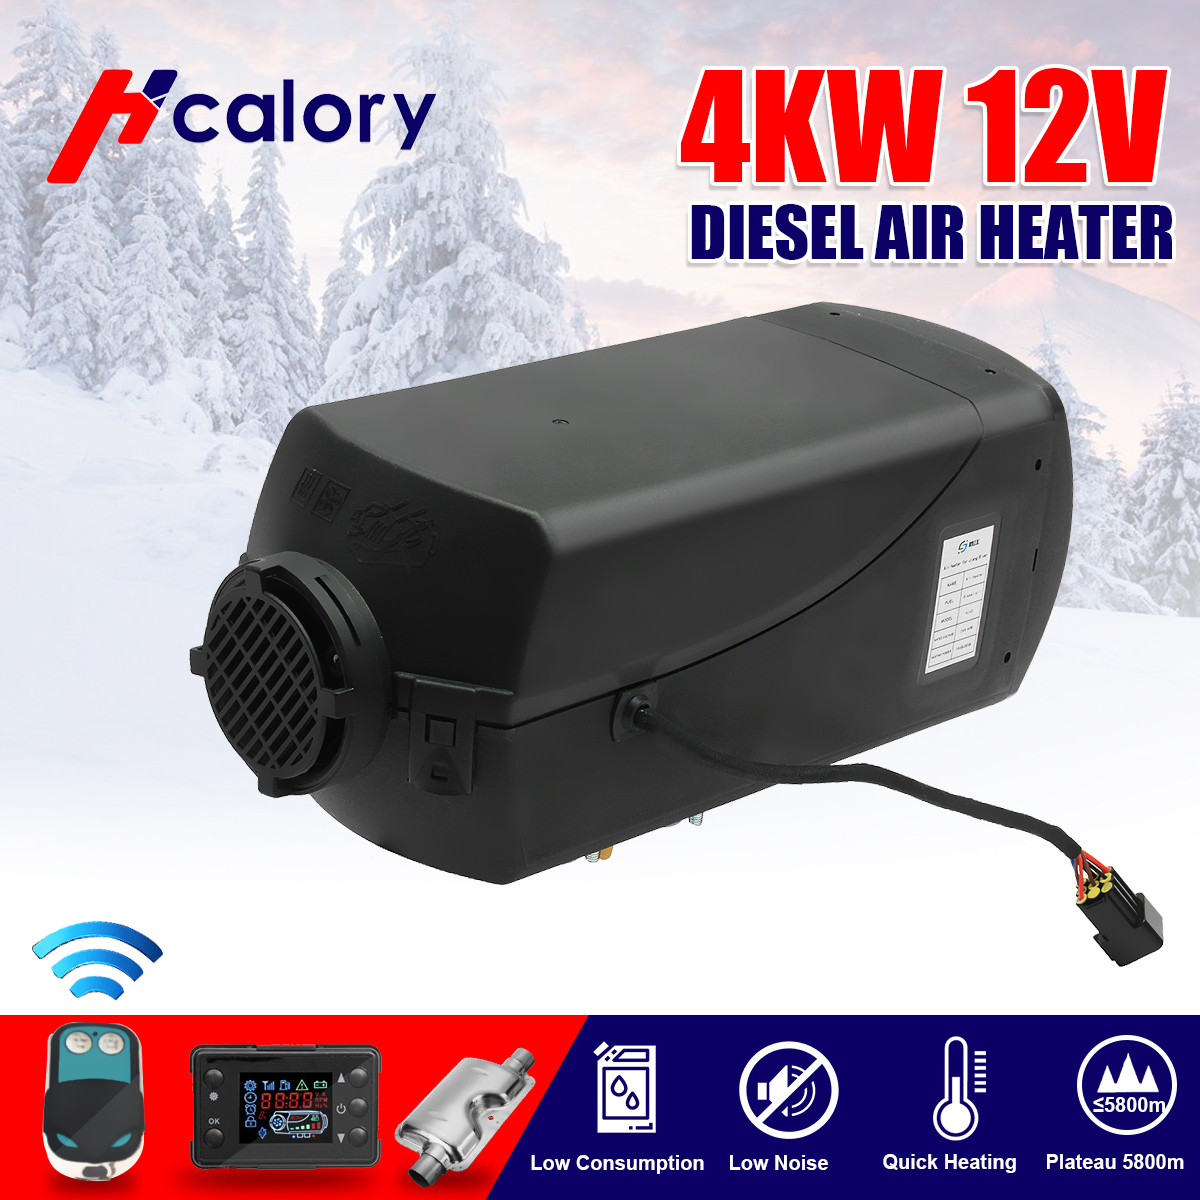 Car Heater 4KW 12V Air Diesels Heater Parking Heater LCD Knob Switch + Silencer +Remote Control For RV, Motorhome Trailer, Truck